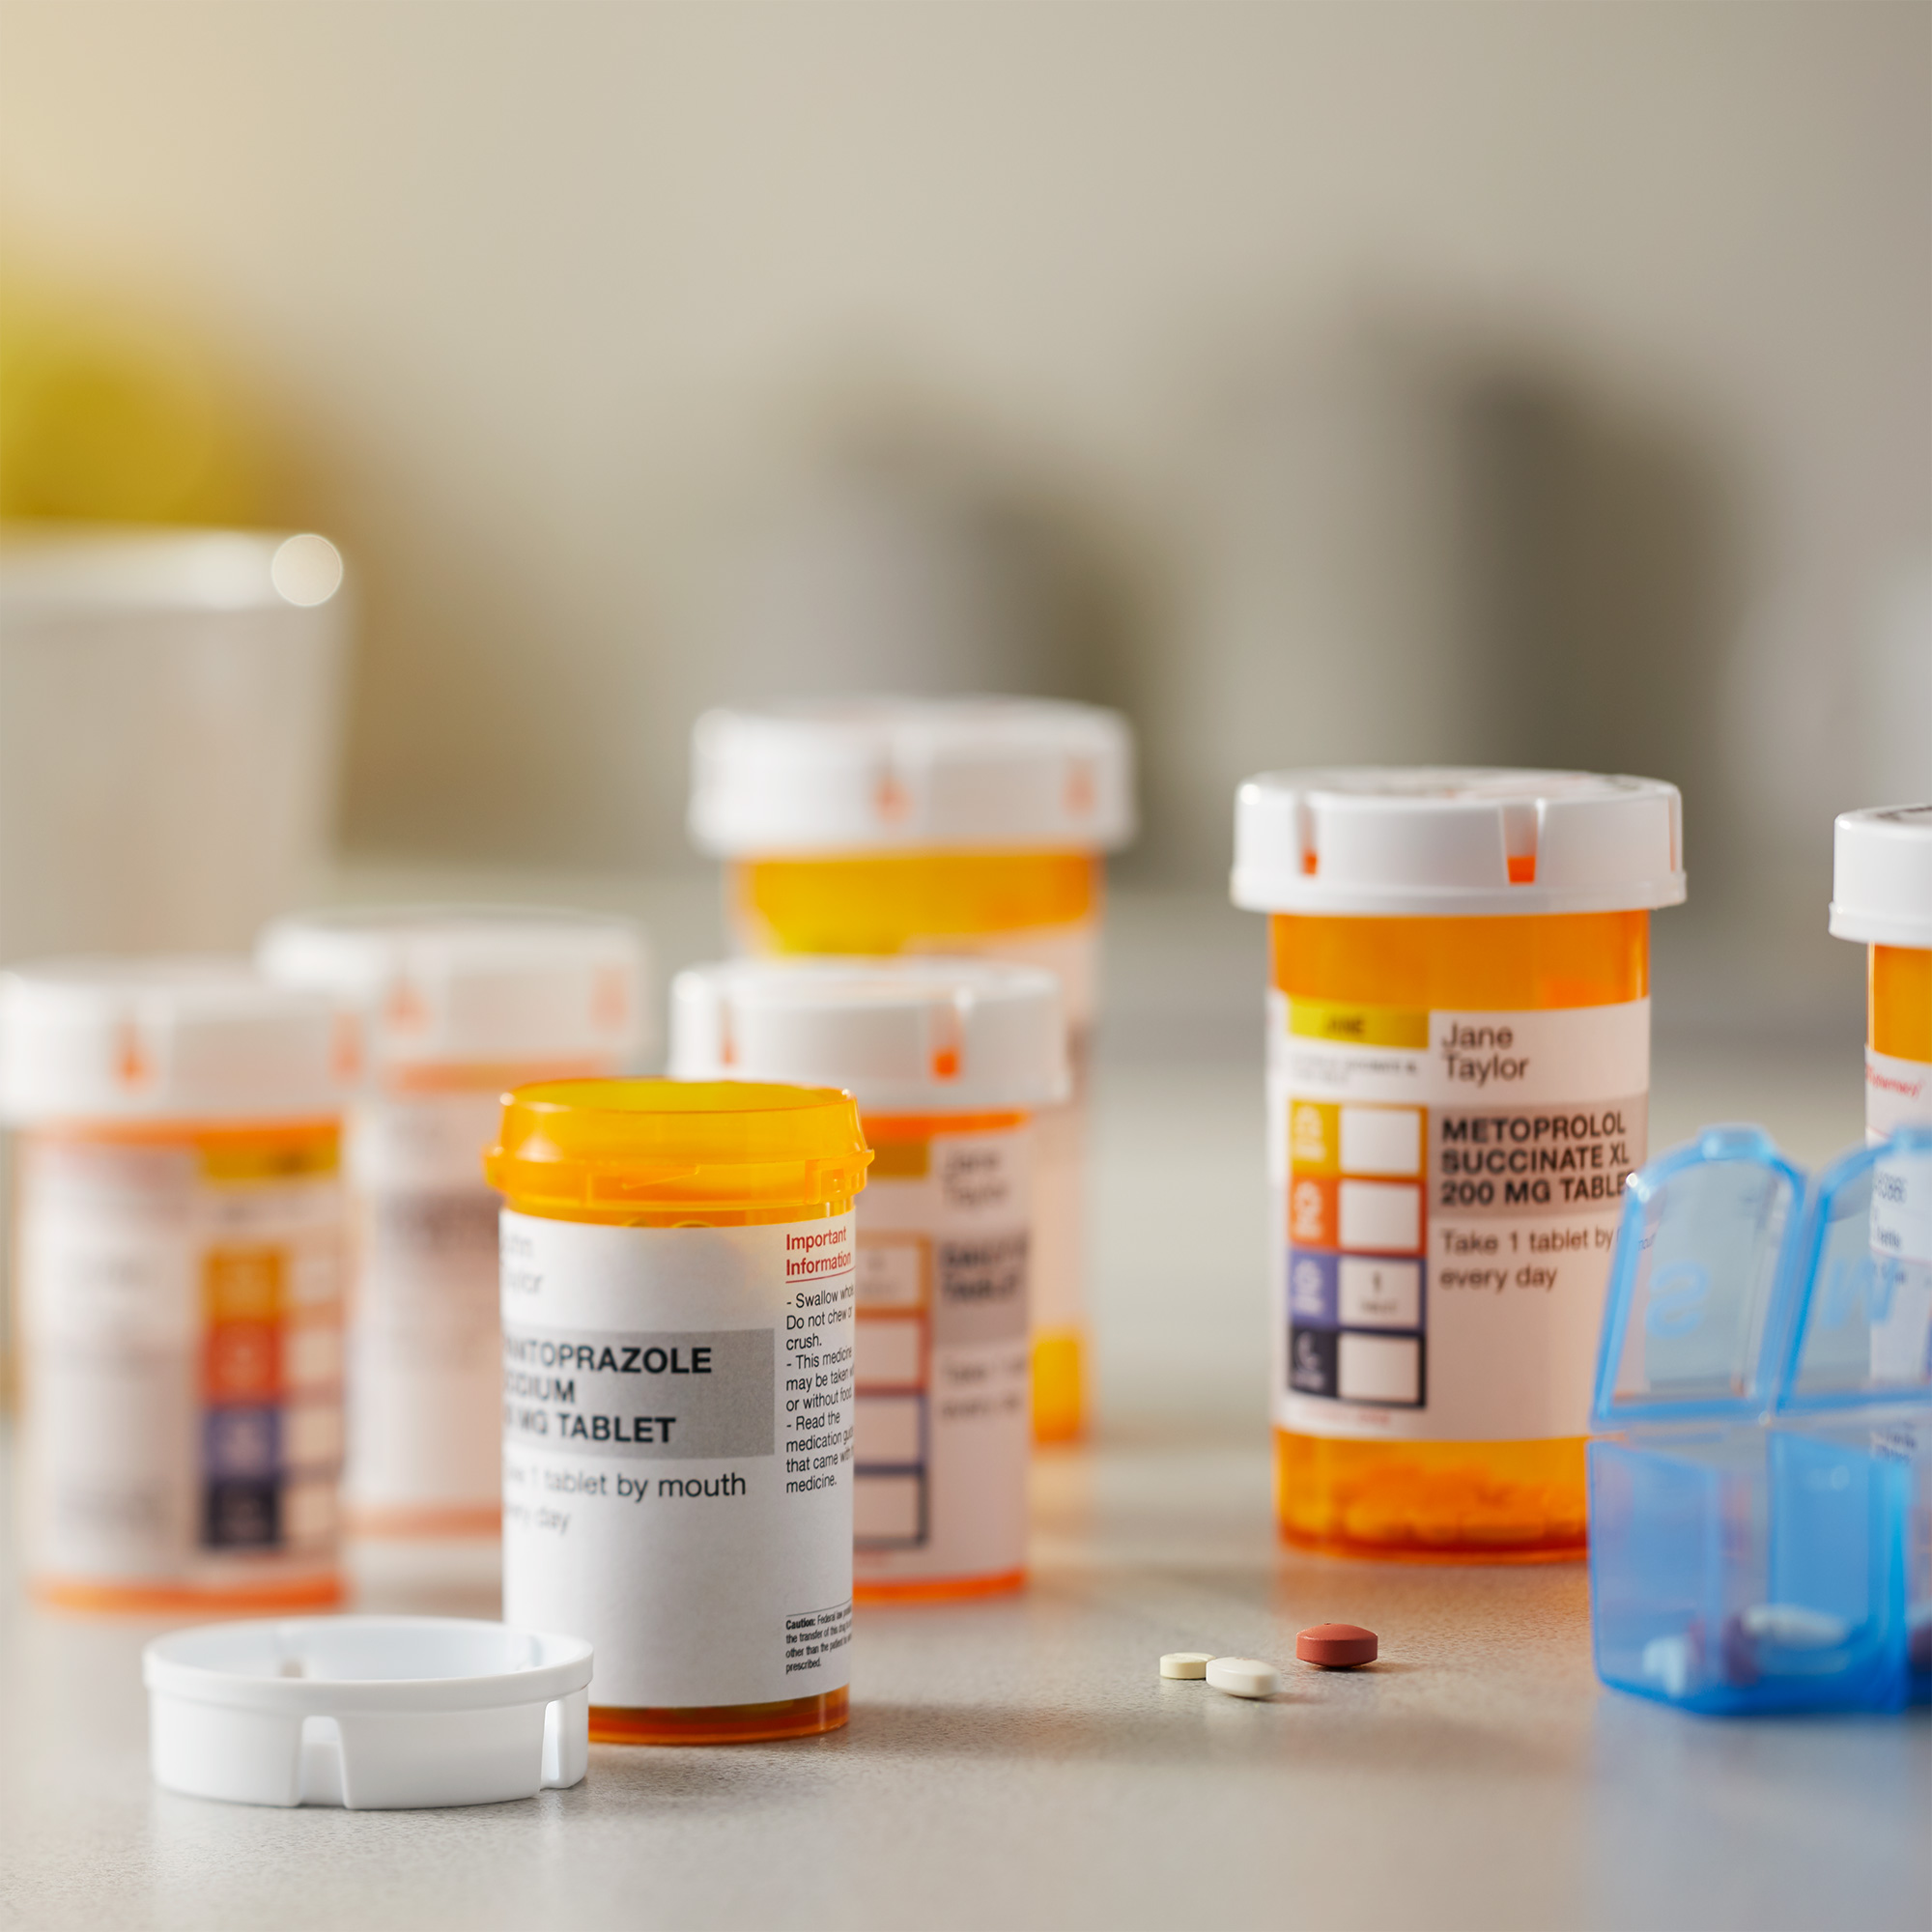 Prescription bottles on a table near a pill organizer.